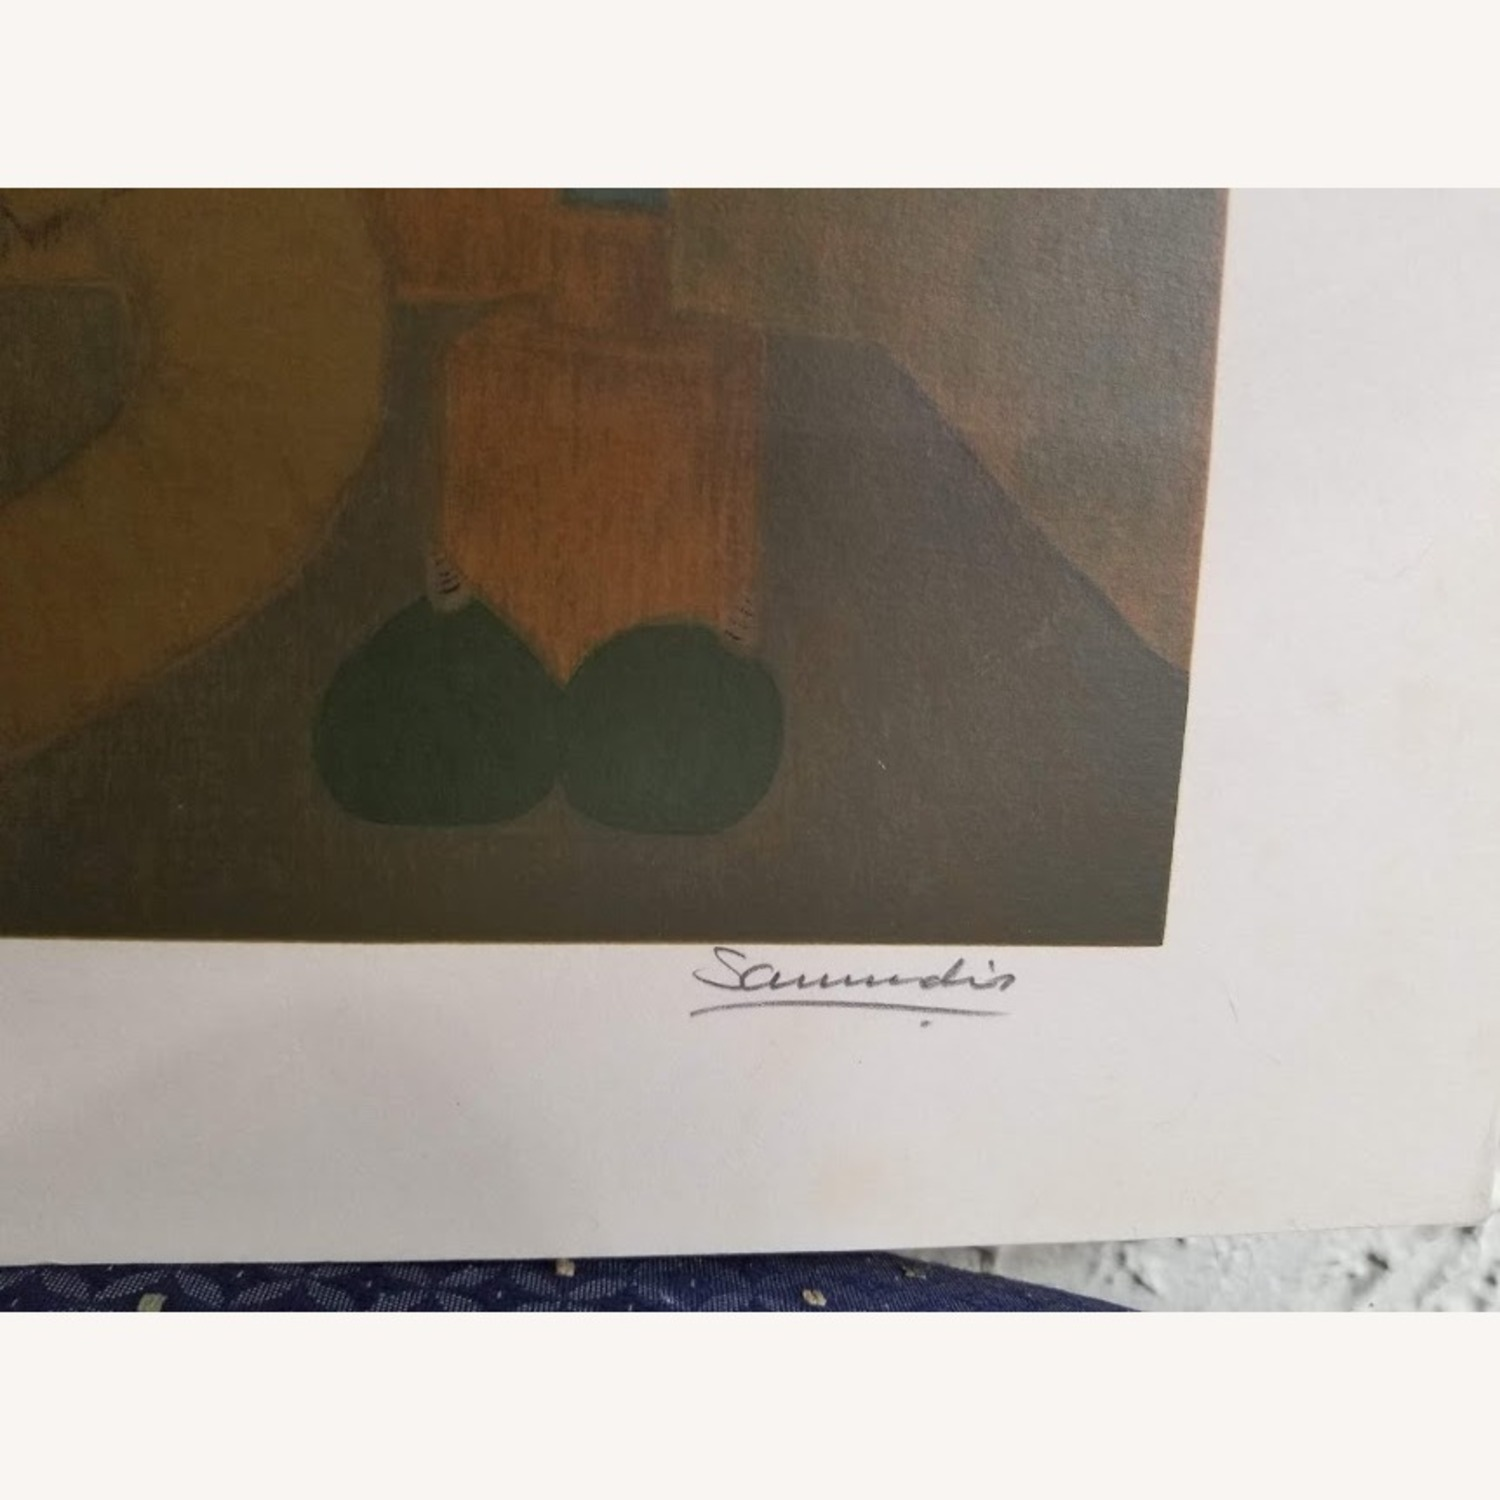 Signed Numbered Colombian Art Print by Antonio Samudio - image-2